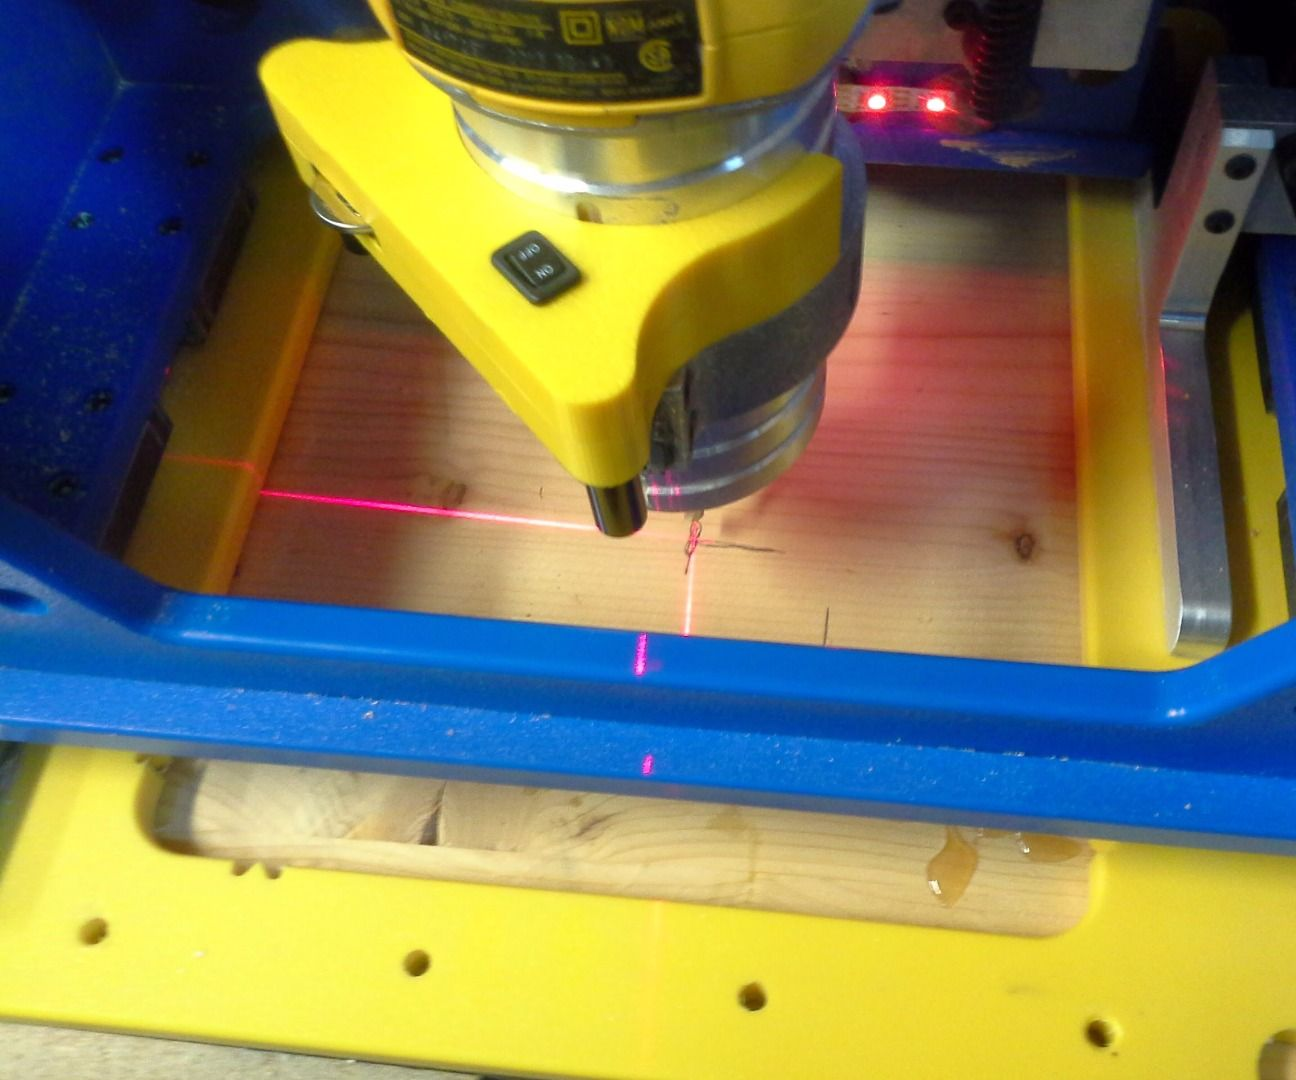 Using alternate zero and alignment lasers with the handibot